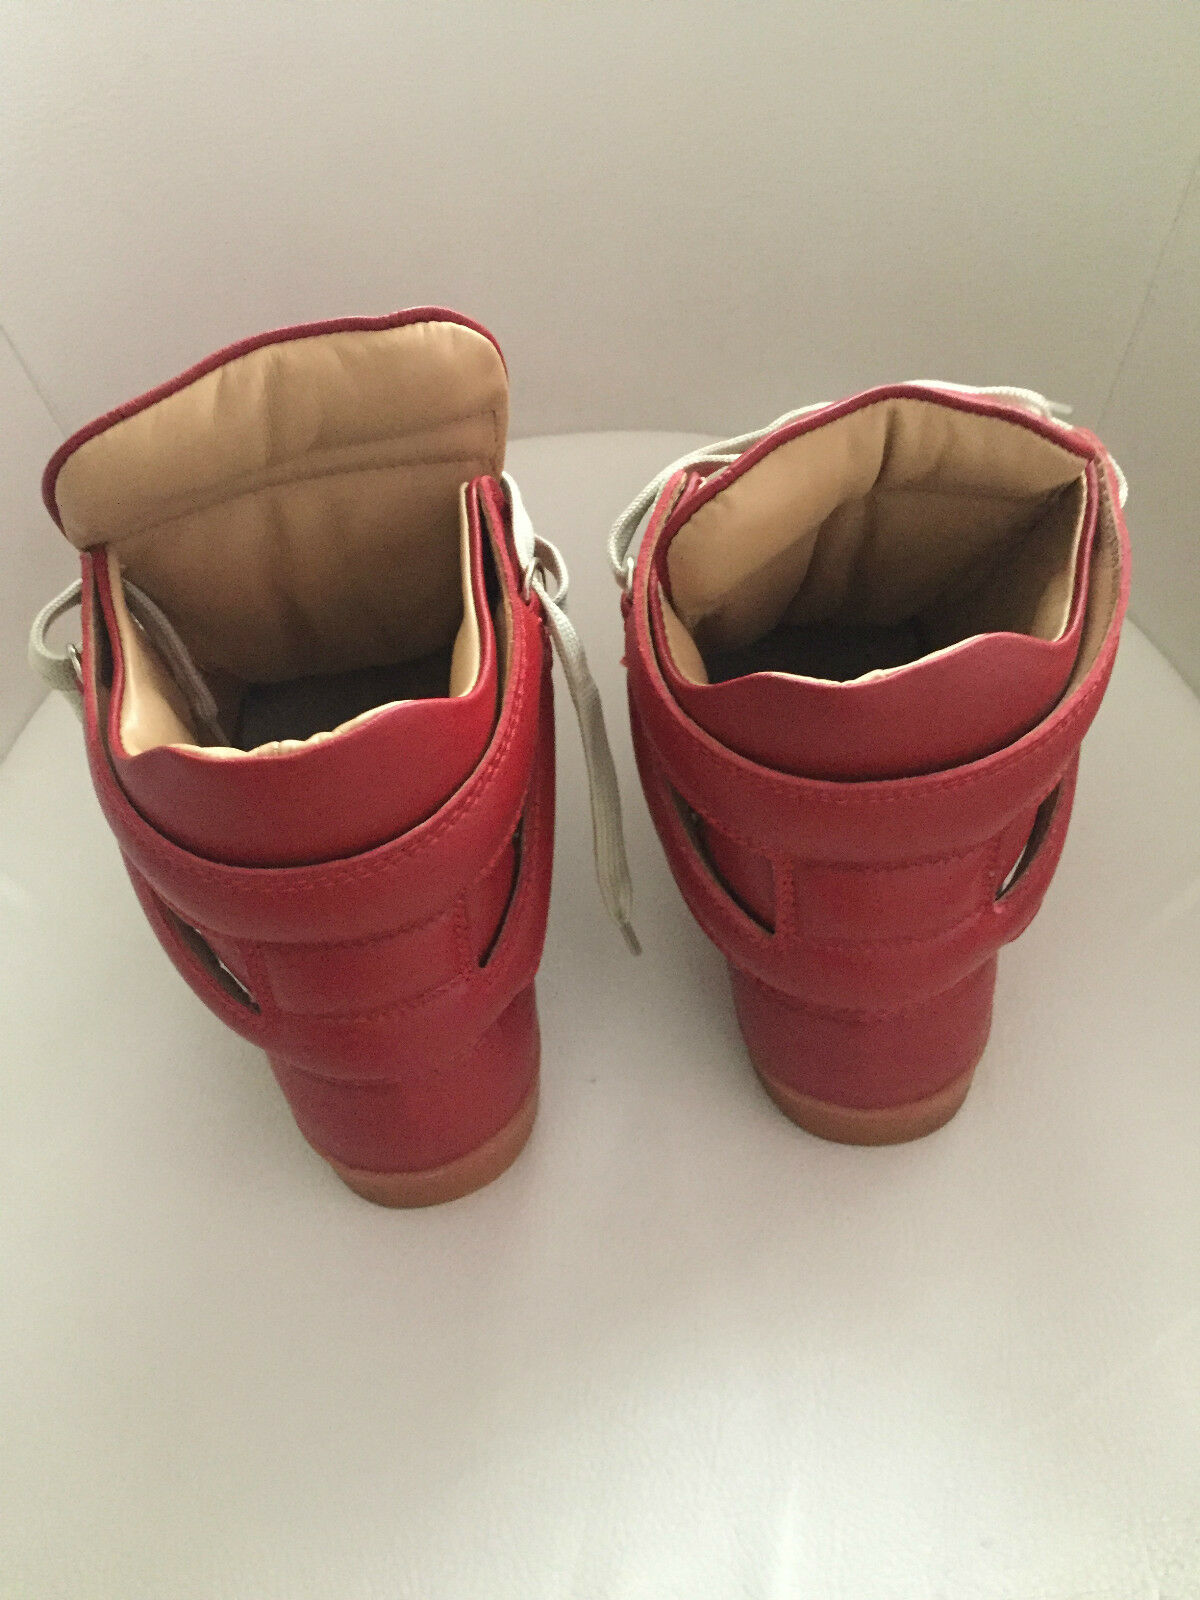 Original Maison Martin Margiela at H&M High EUR Top Sneakers in Rot EUR High 41 size US 8 5e8f83